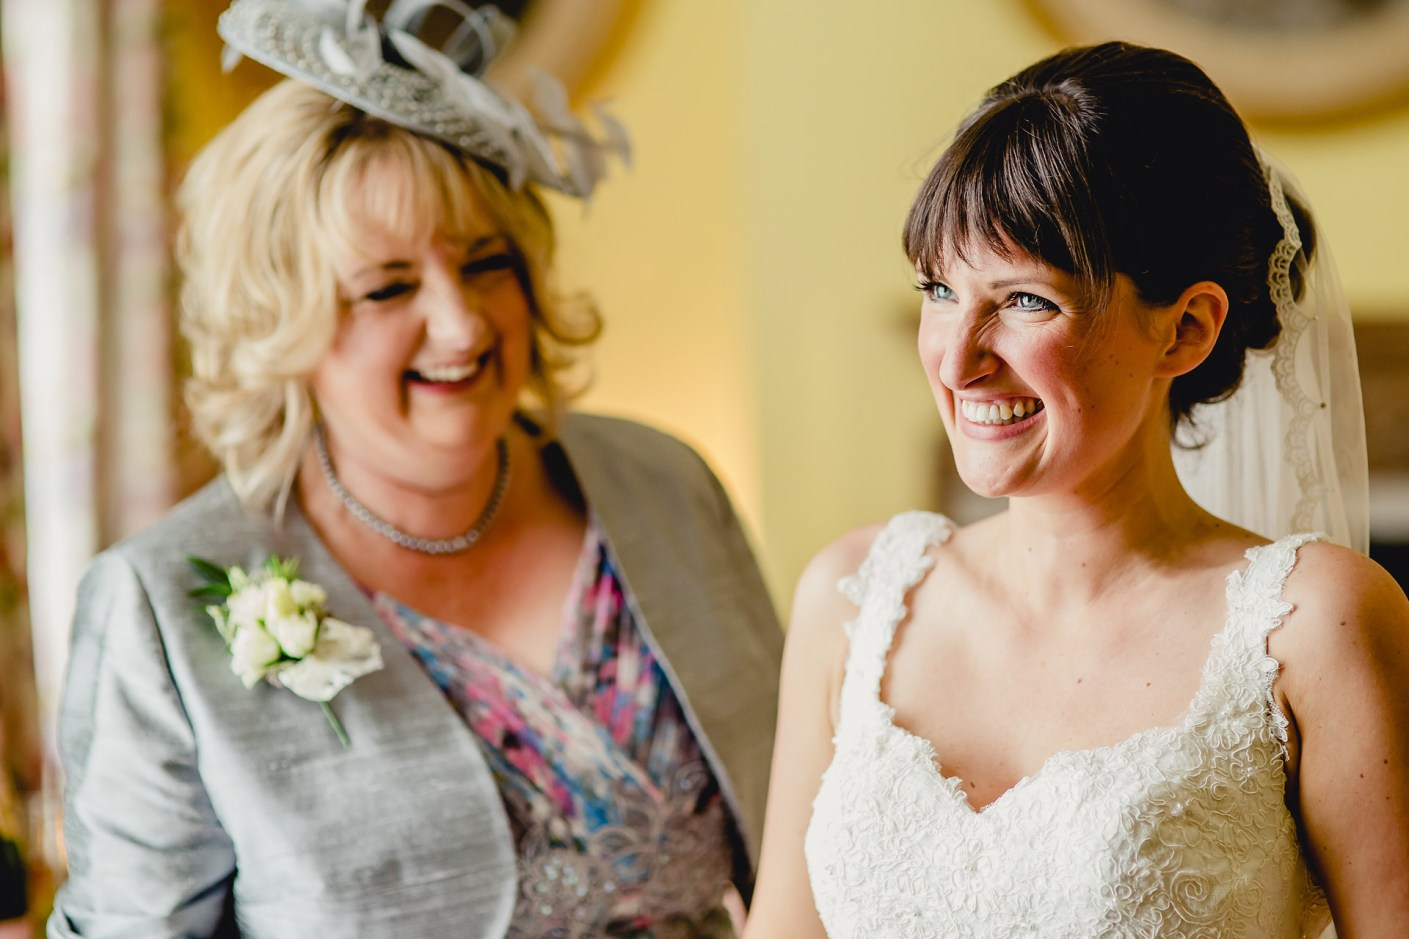 jess with her mum looking on before the wedding service at capesthorne hall